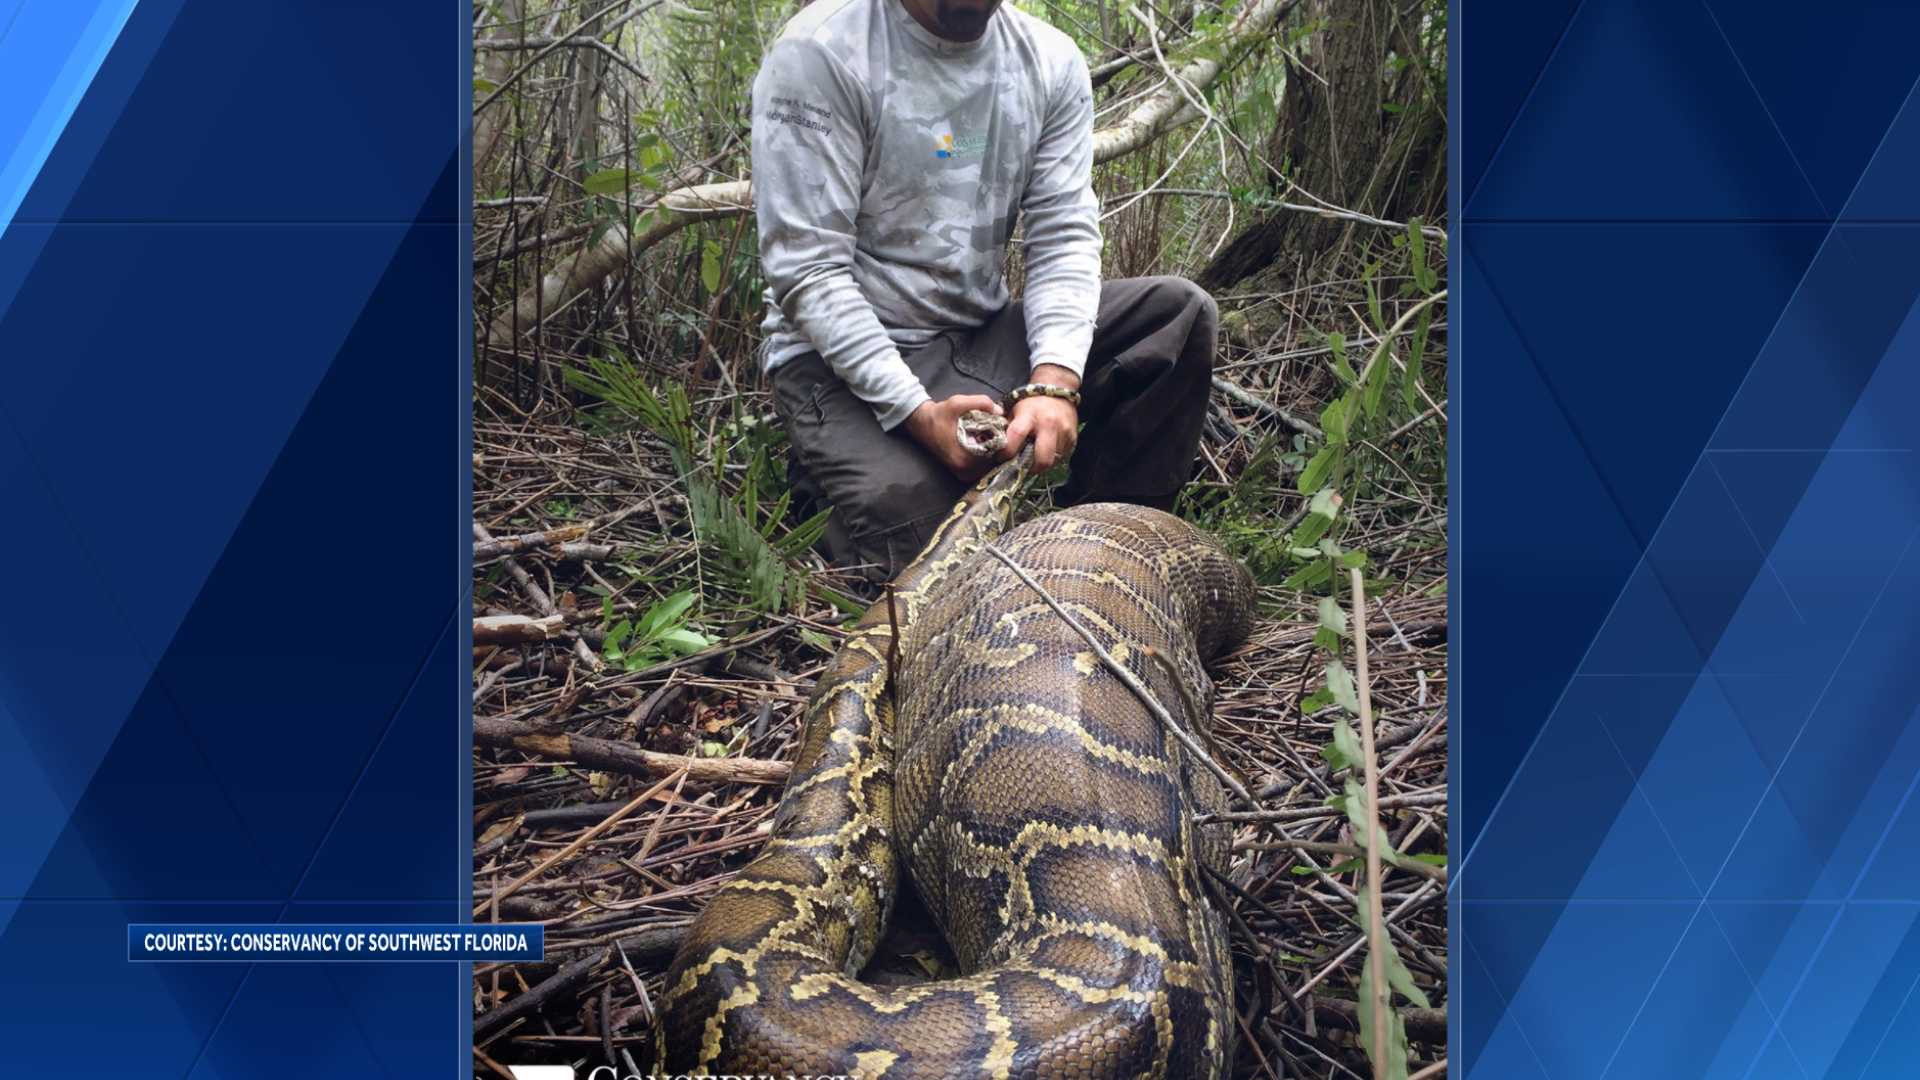 Python ingests deer that weighs more than itself in Florida